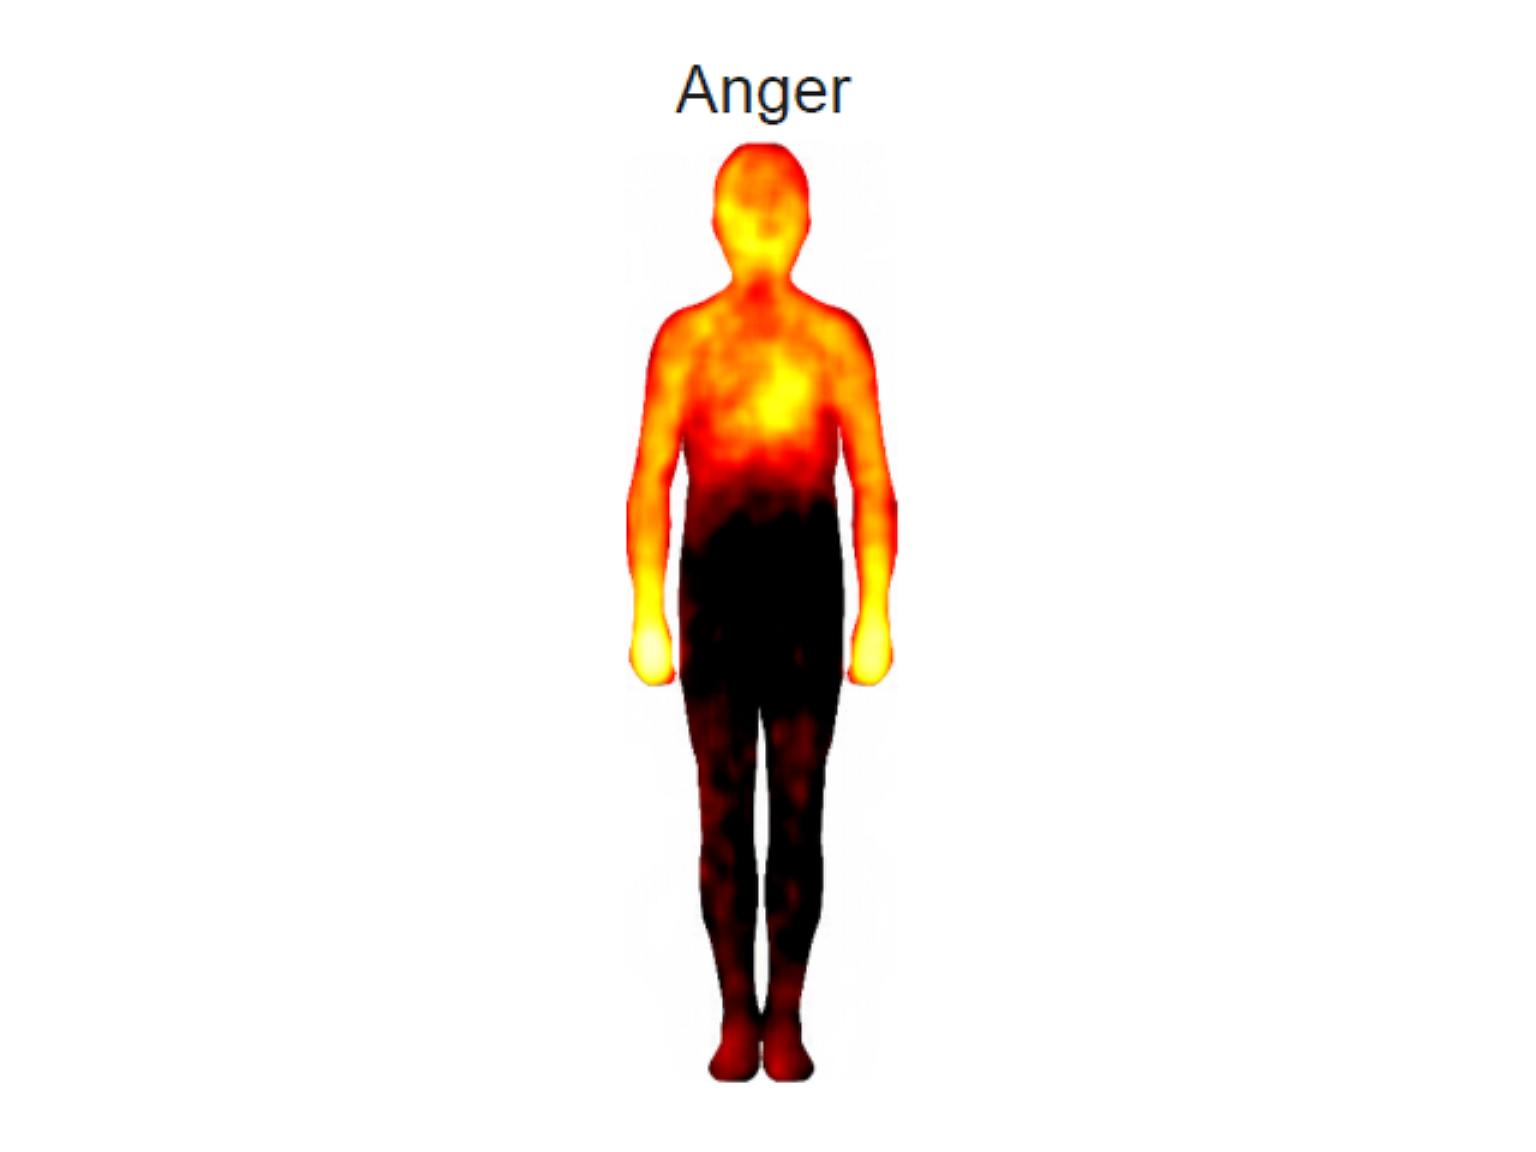 anger1.png